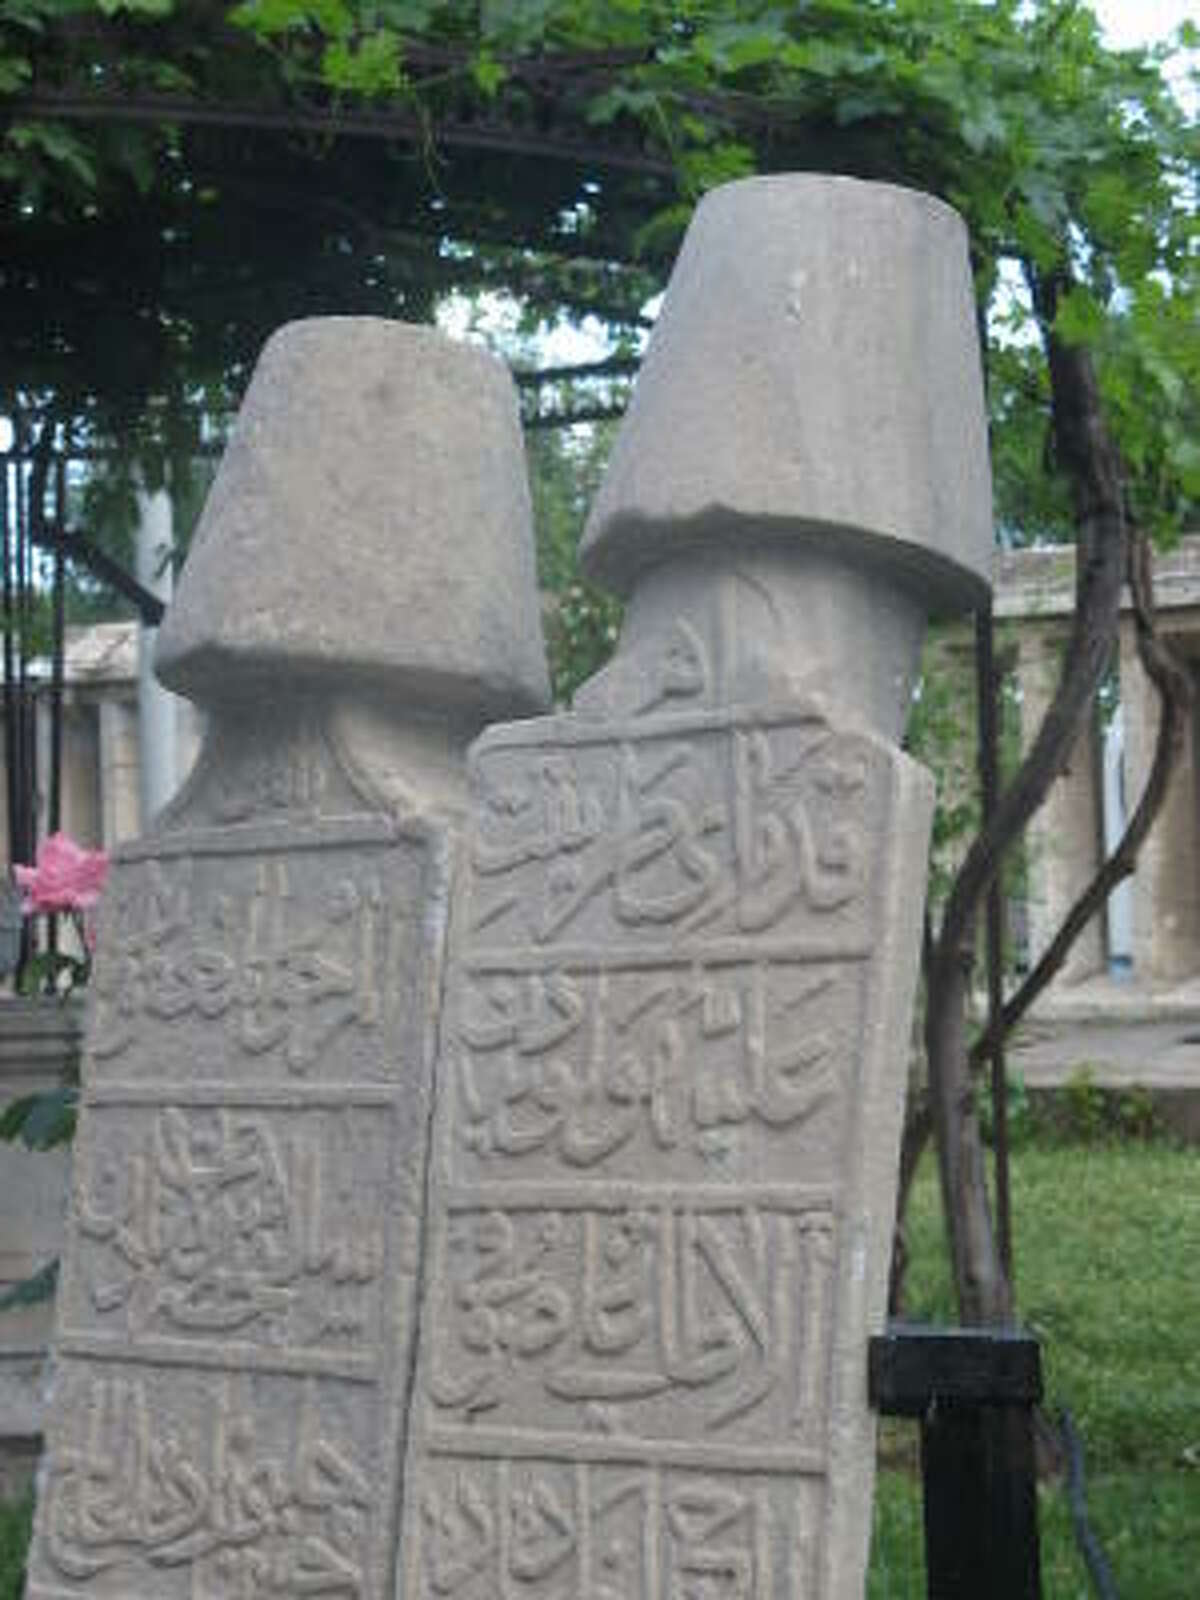 Headstones located in the grounds of the Mevlana museum are topped with conical shapes similar to the headdress the Dervishes wear to symbolize the ego's tomb.